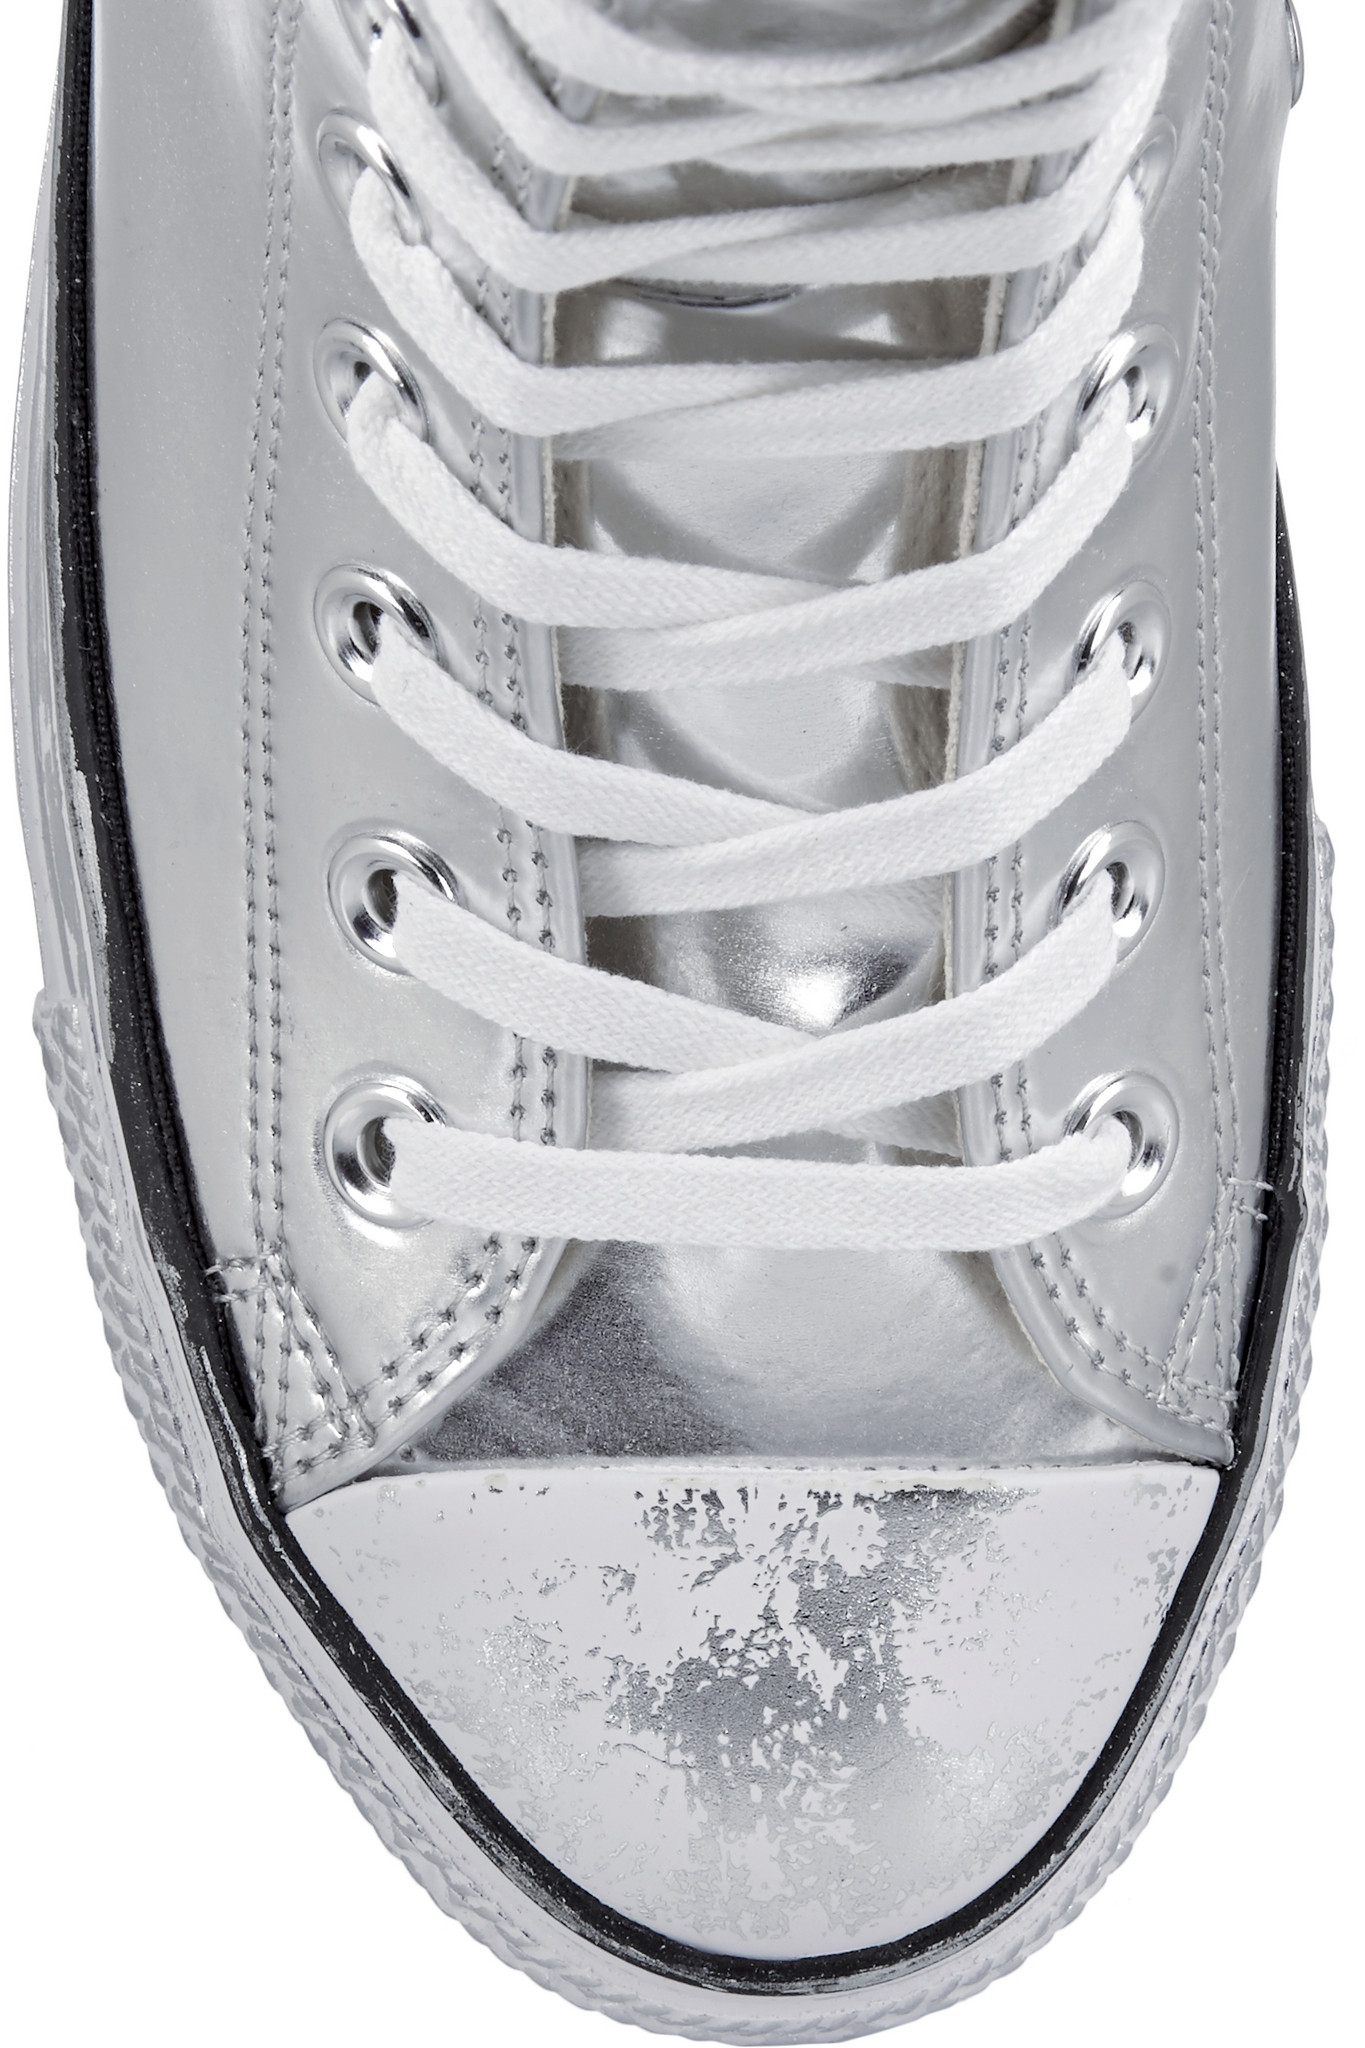 98487c5fdc8 Lyst - Converse Chuck Taylor All Star Chrome Metallic Leather High ...